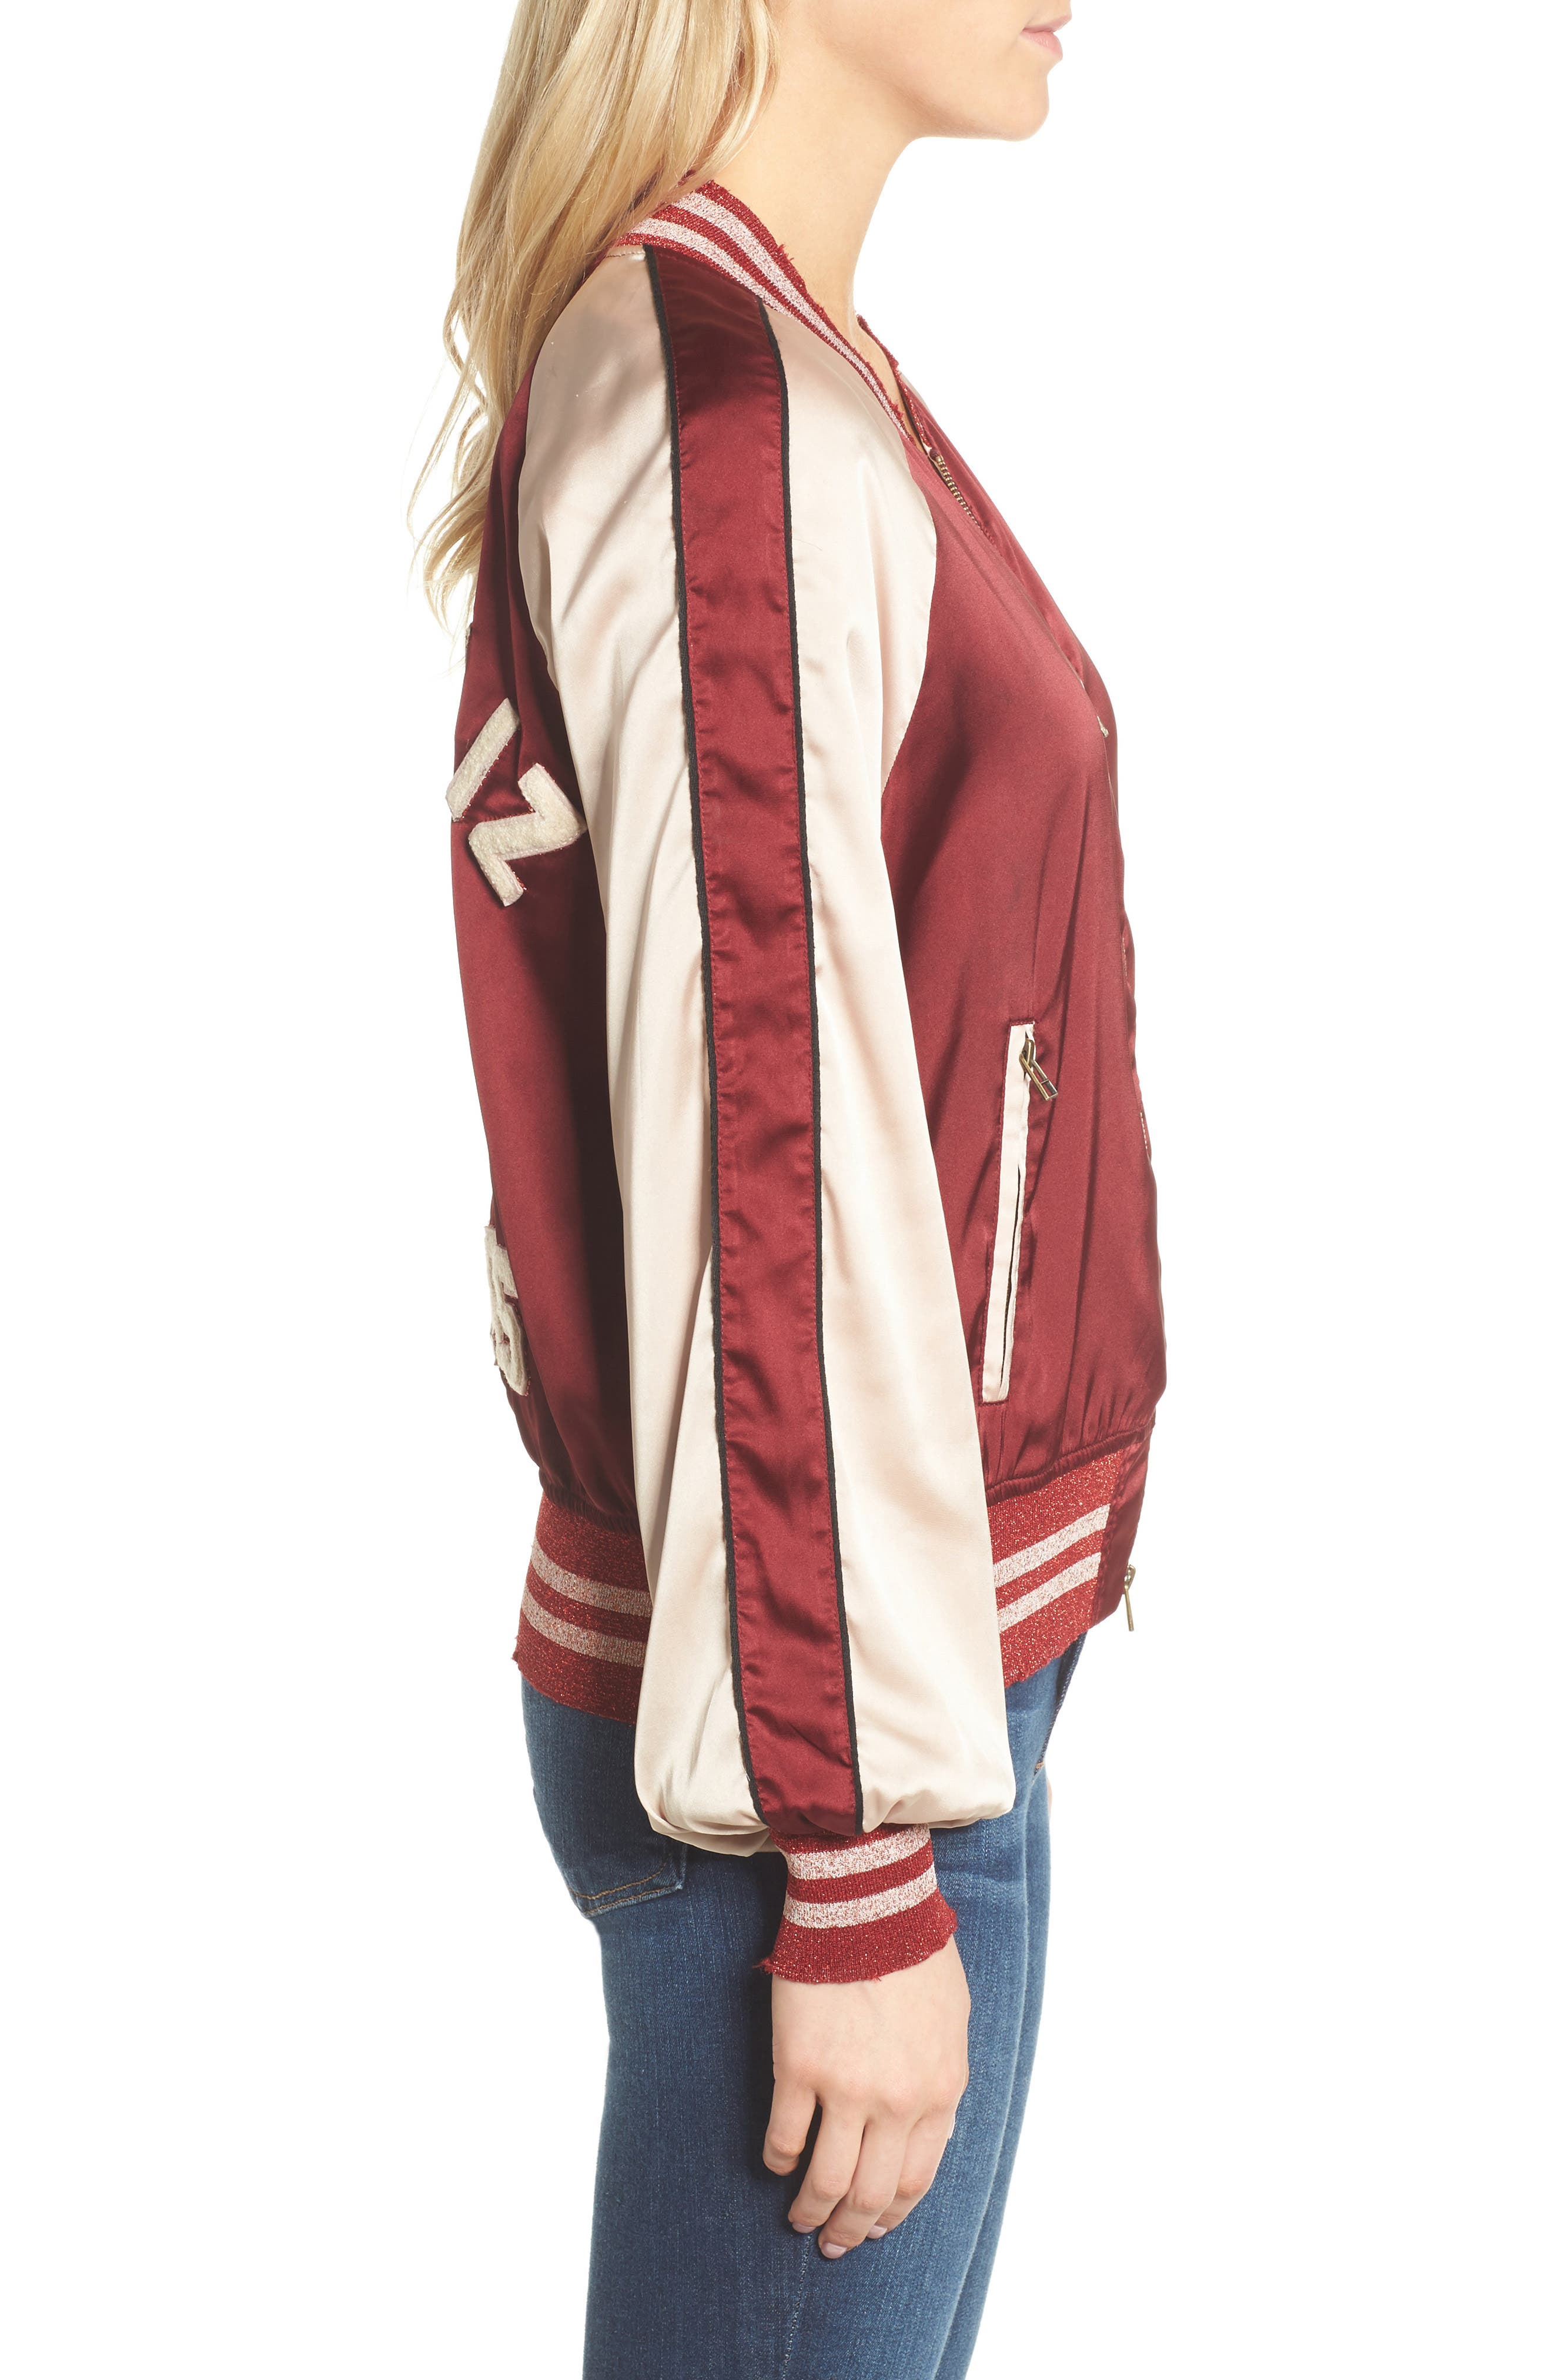 Los Feliz Tigers Bomber Jacket,                             Alternate thumbnail 3, color,                             Maroon